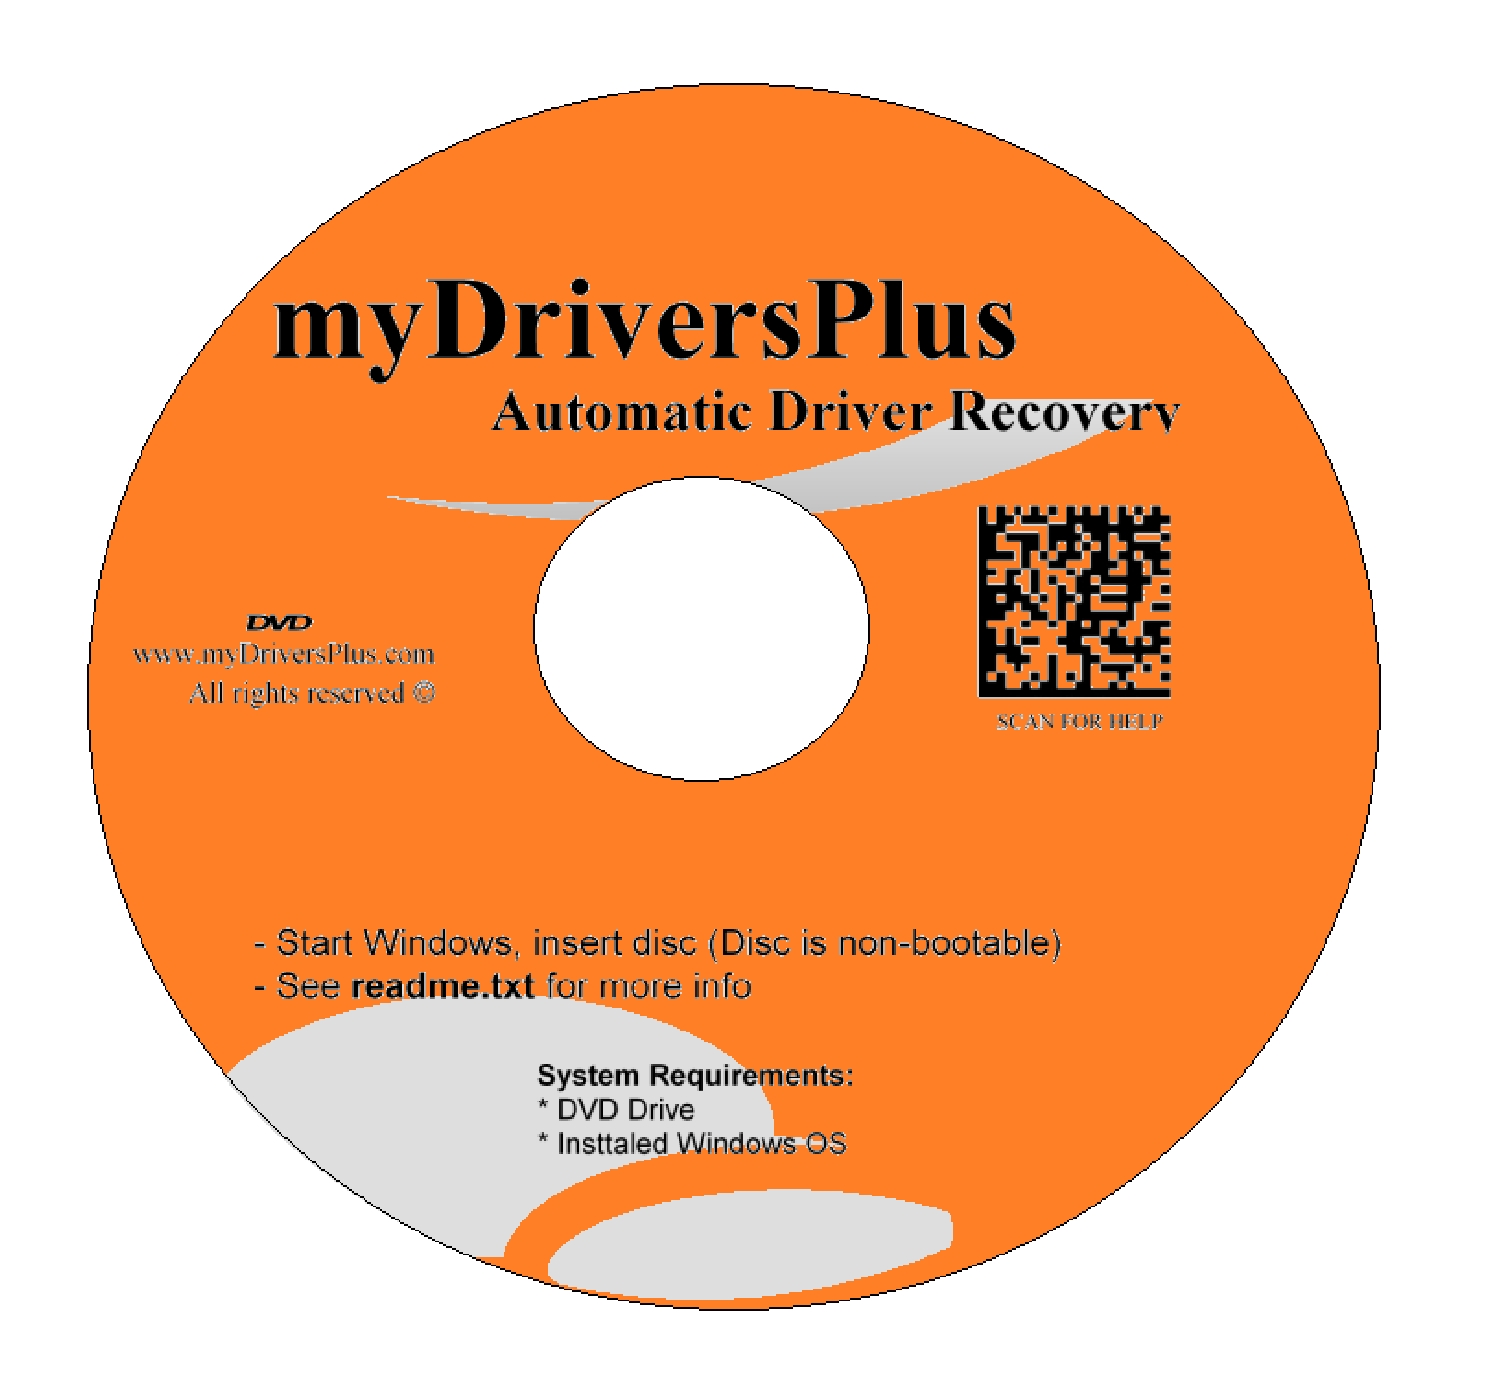 eMachines eTower 400i Drivers Recovery Restore Resource Utilities Software with Automatic One-Click Installer Unattended for Internet, Wi-Fi, Ethernet, Video, Sound, Audio, USB, Devices, Chipset ...(